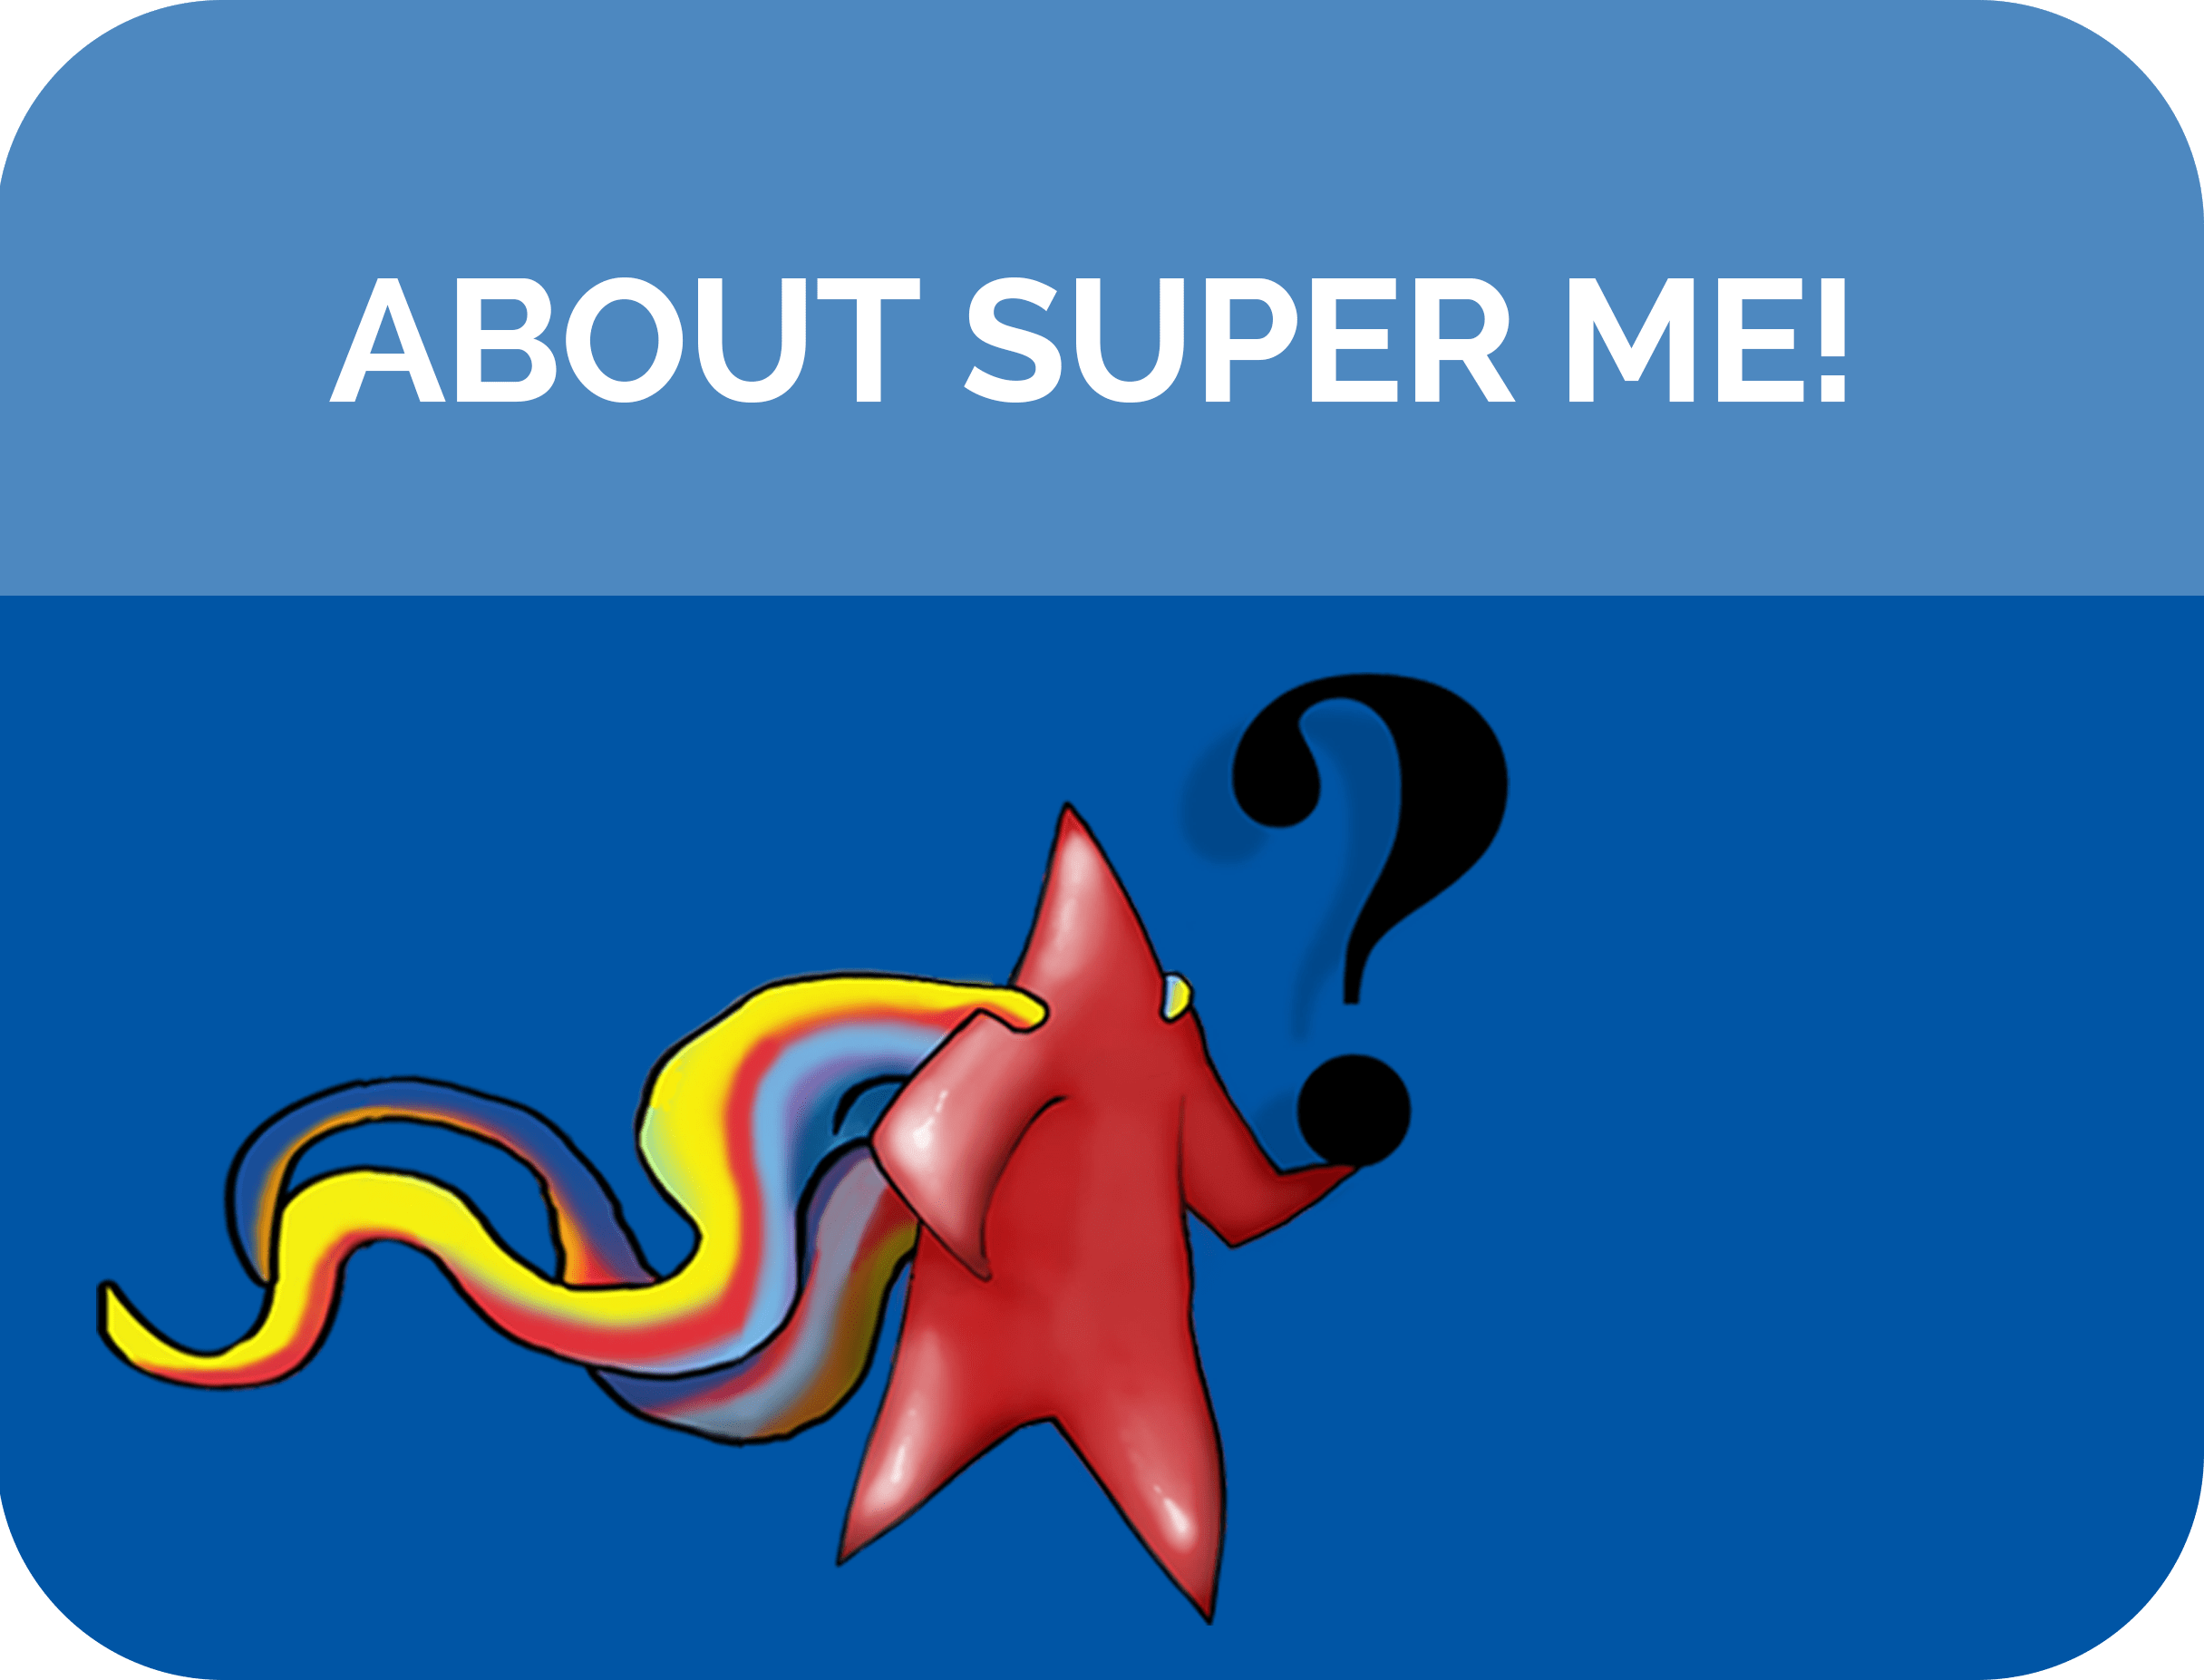 All About Super Me!